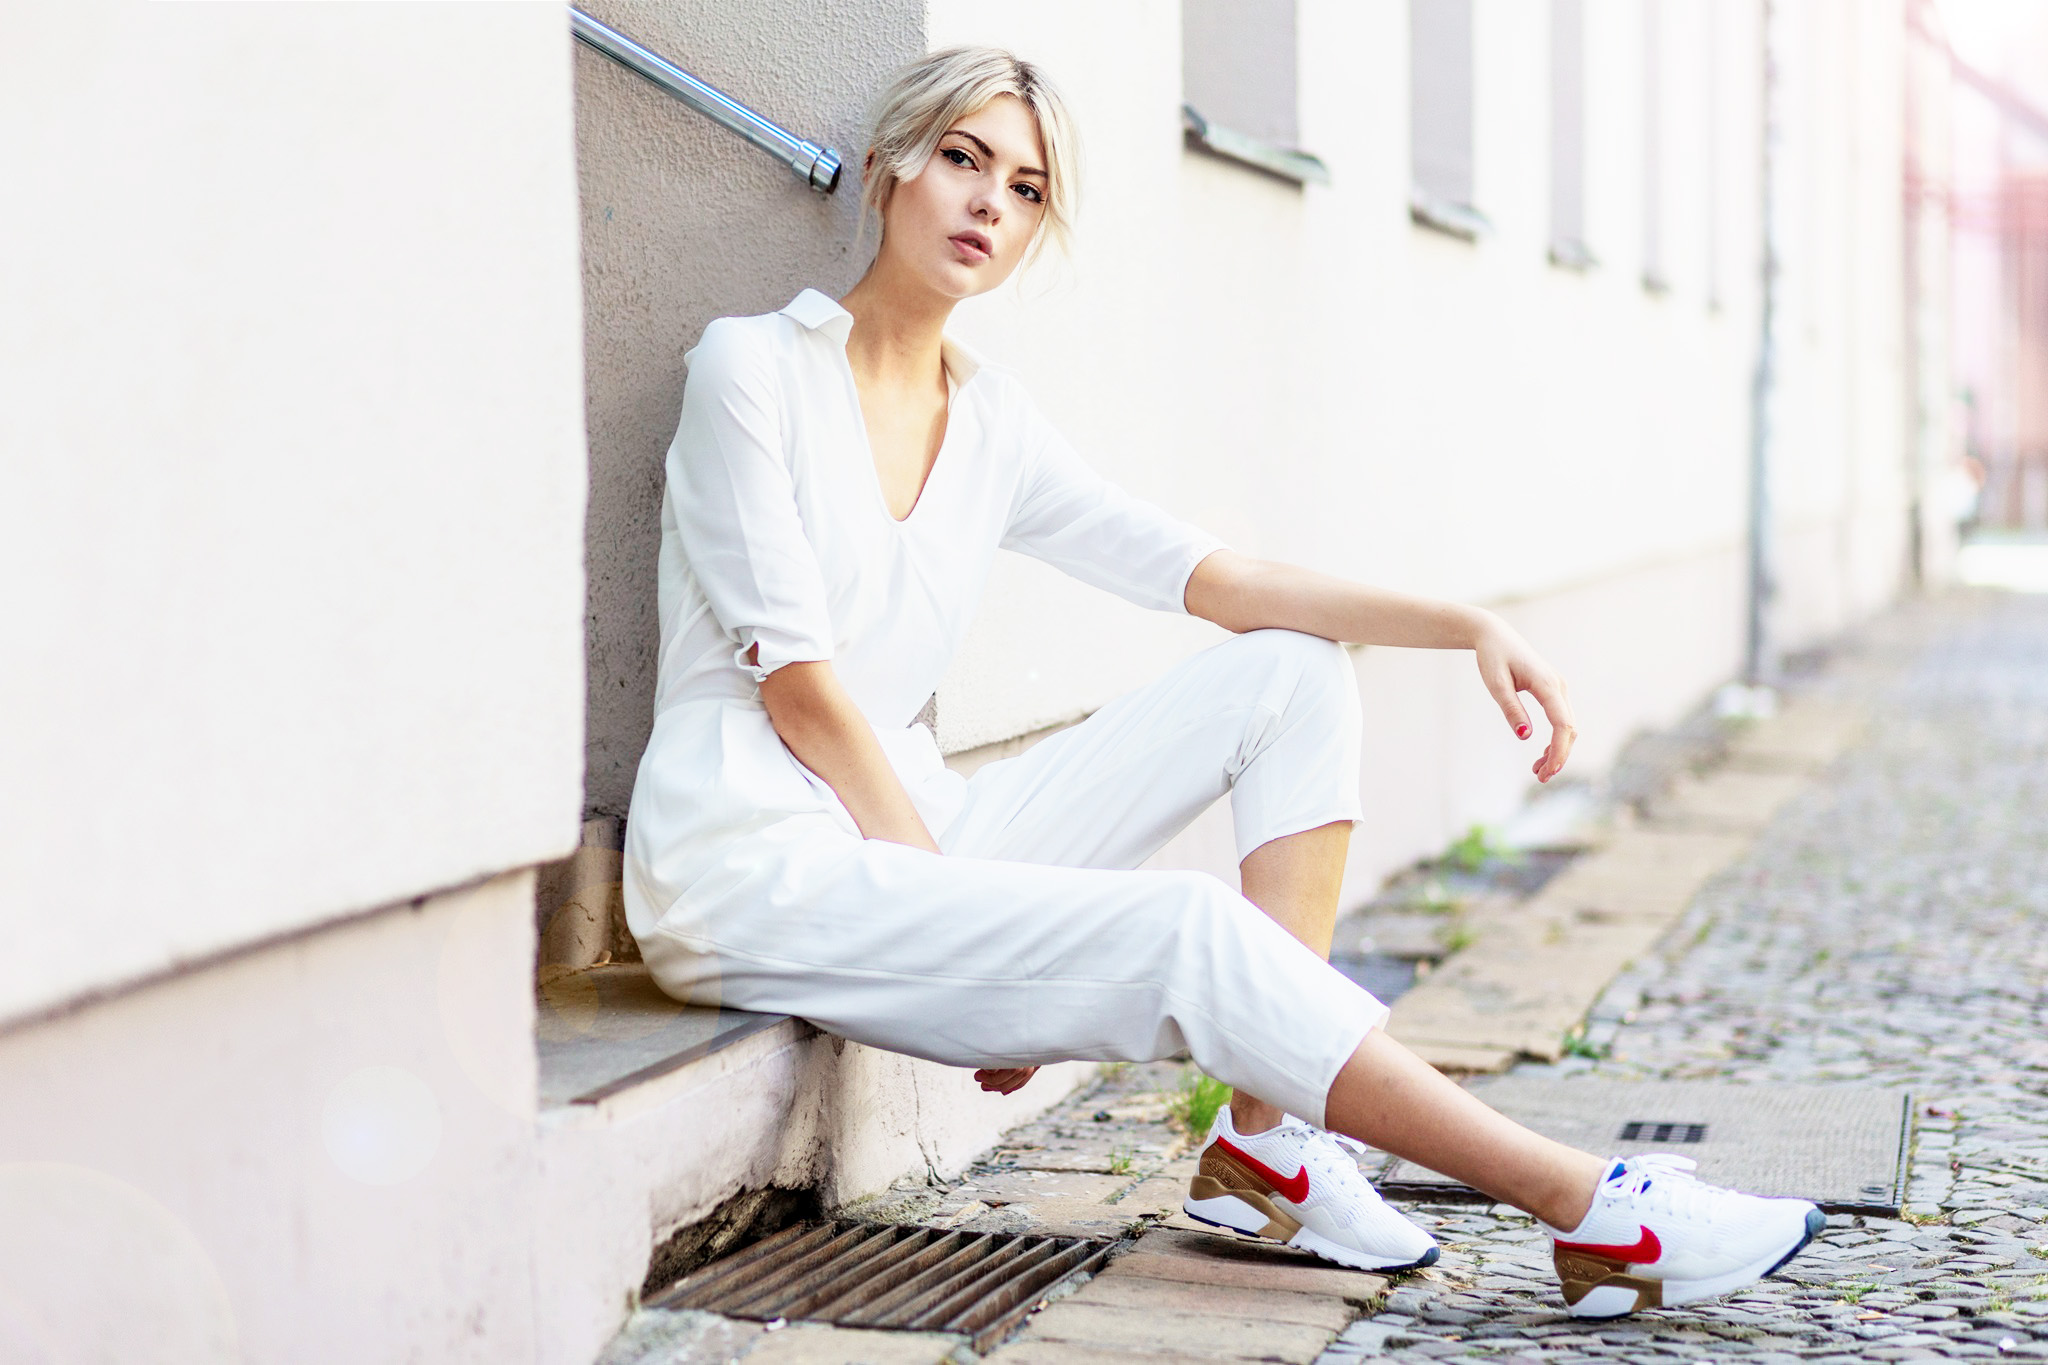 BERLIN, GERMANY - JULY 26:  Ebba Zingmark wearing a white jumpsuit from The 5TH and white Nike sneakers on July 26, 2016 in Berlin, Germany. (Photo by Christian Vierig/Getty Images) *** Local Caption *** Ebba Zingmark